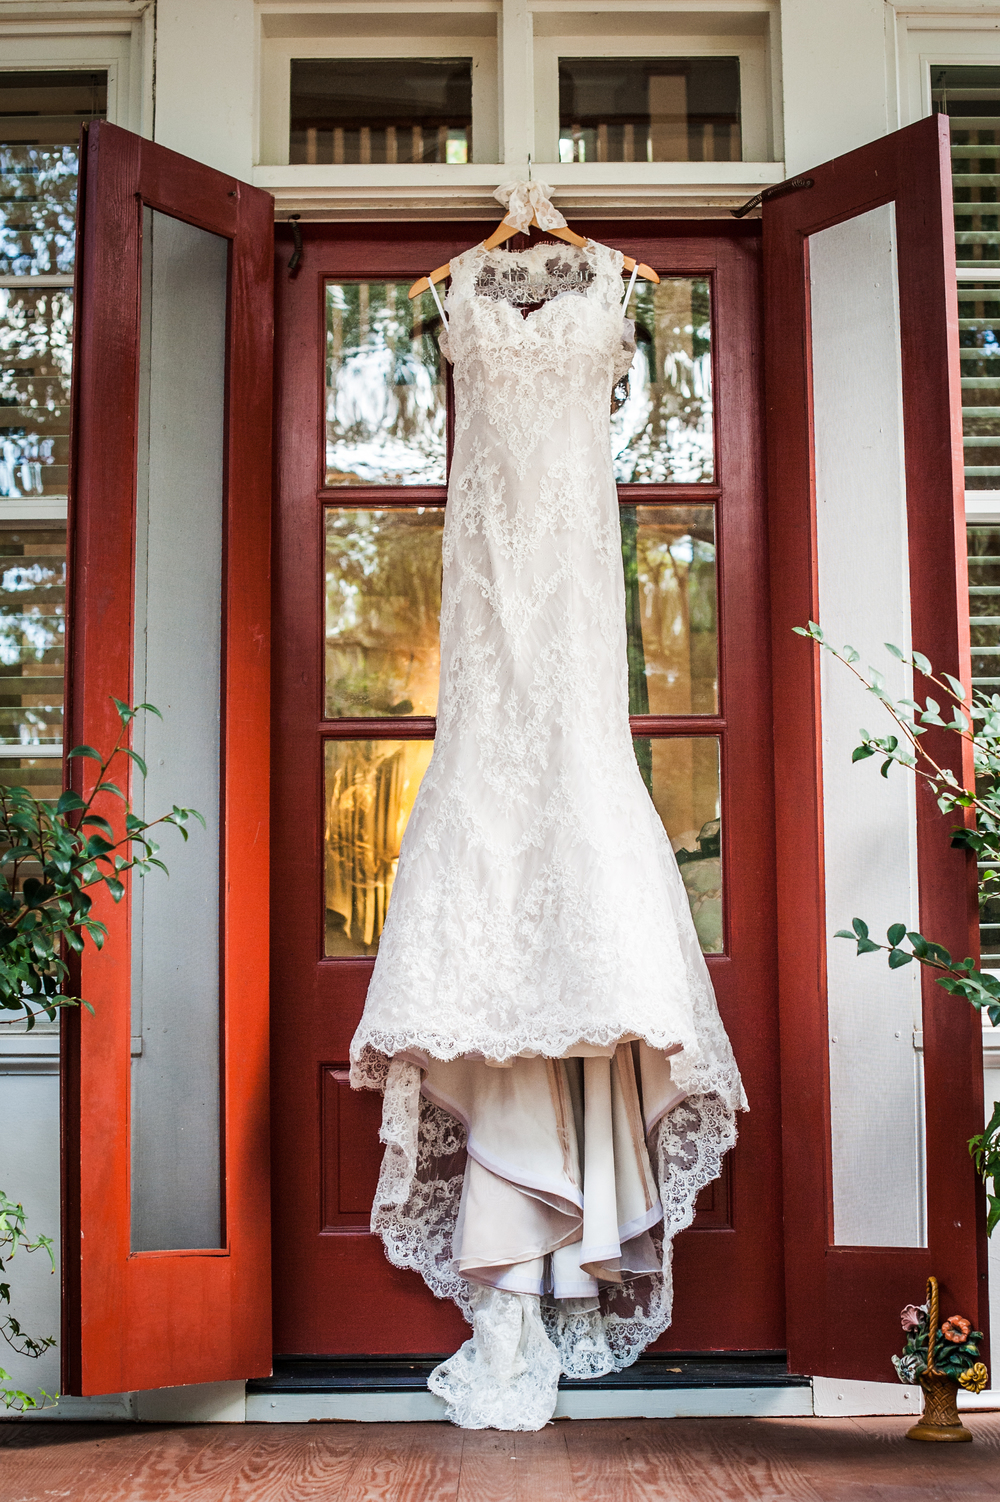 Lowcountry Wedding Dress at Brookland Pointe